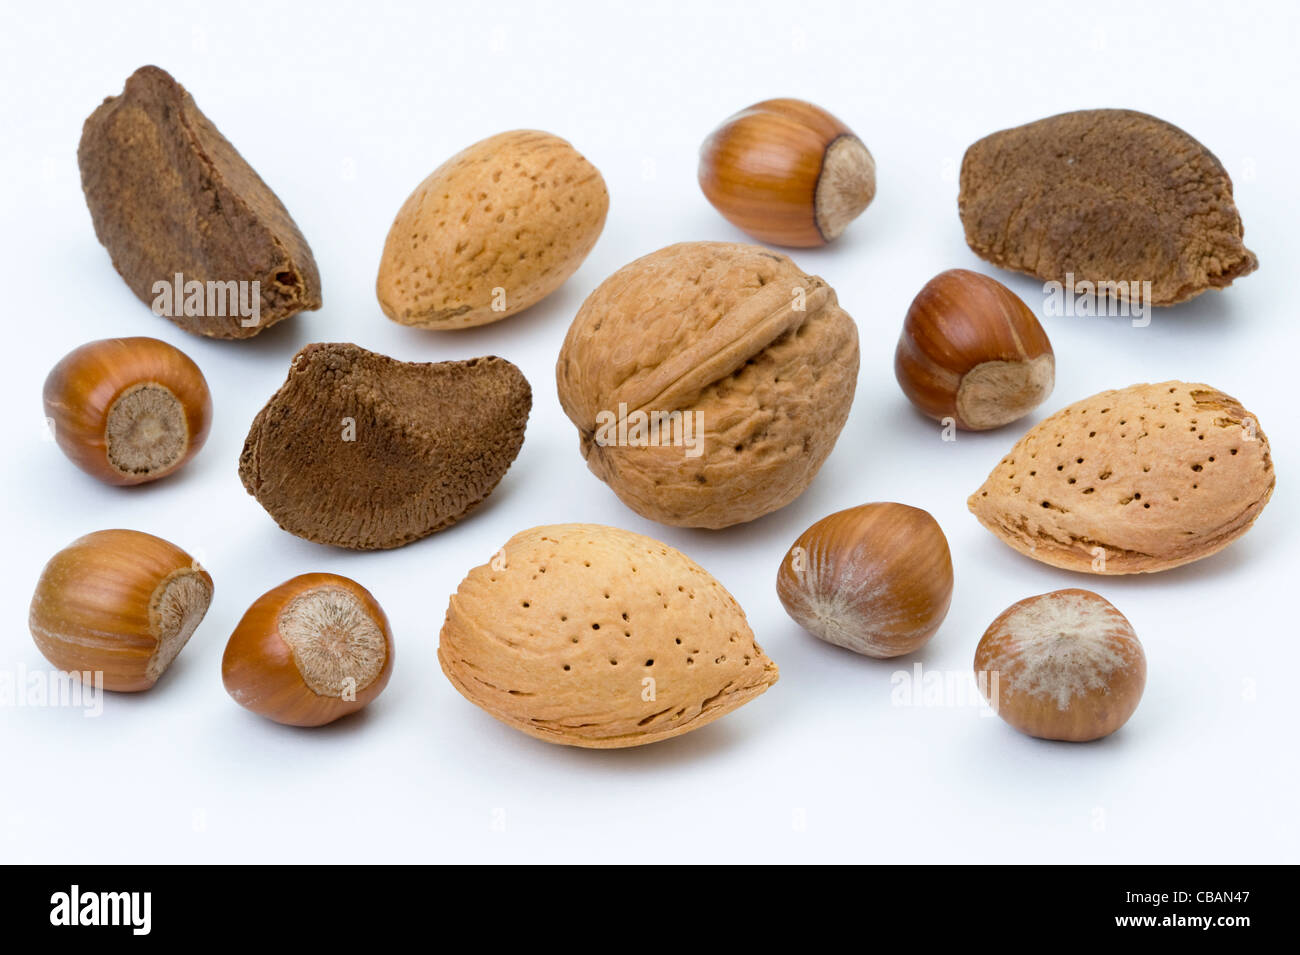 a selection of nuts in their shells including: almond, brazil, walnut, hazel nut - Stock Image